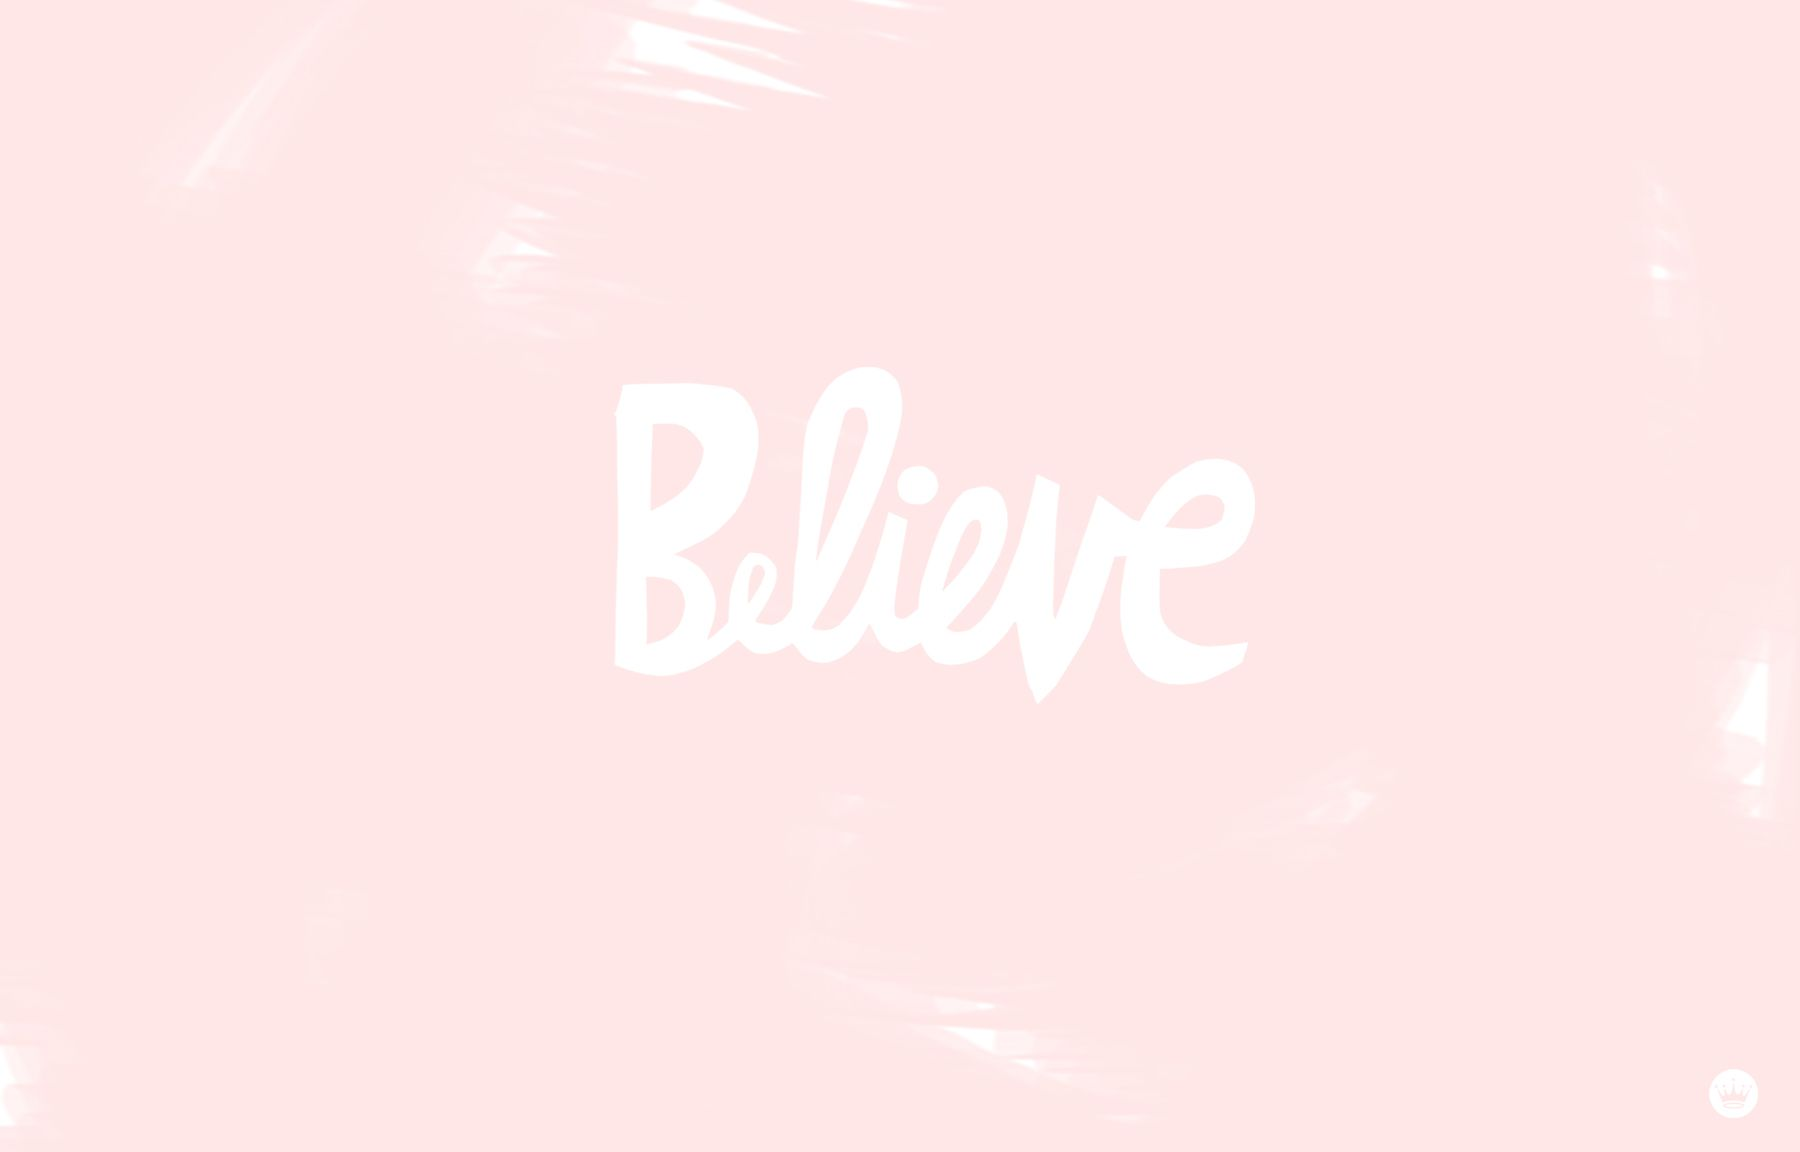 free-downloadable-digital-wallpapers-from-hallmark-_-believe-_-